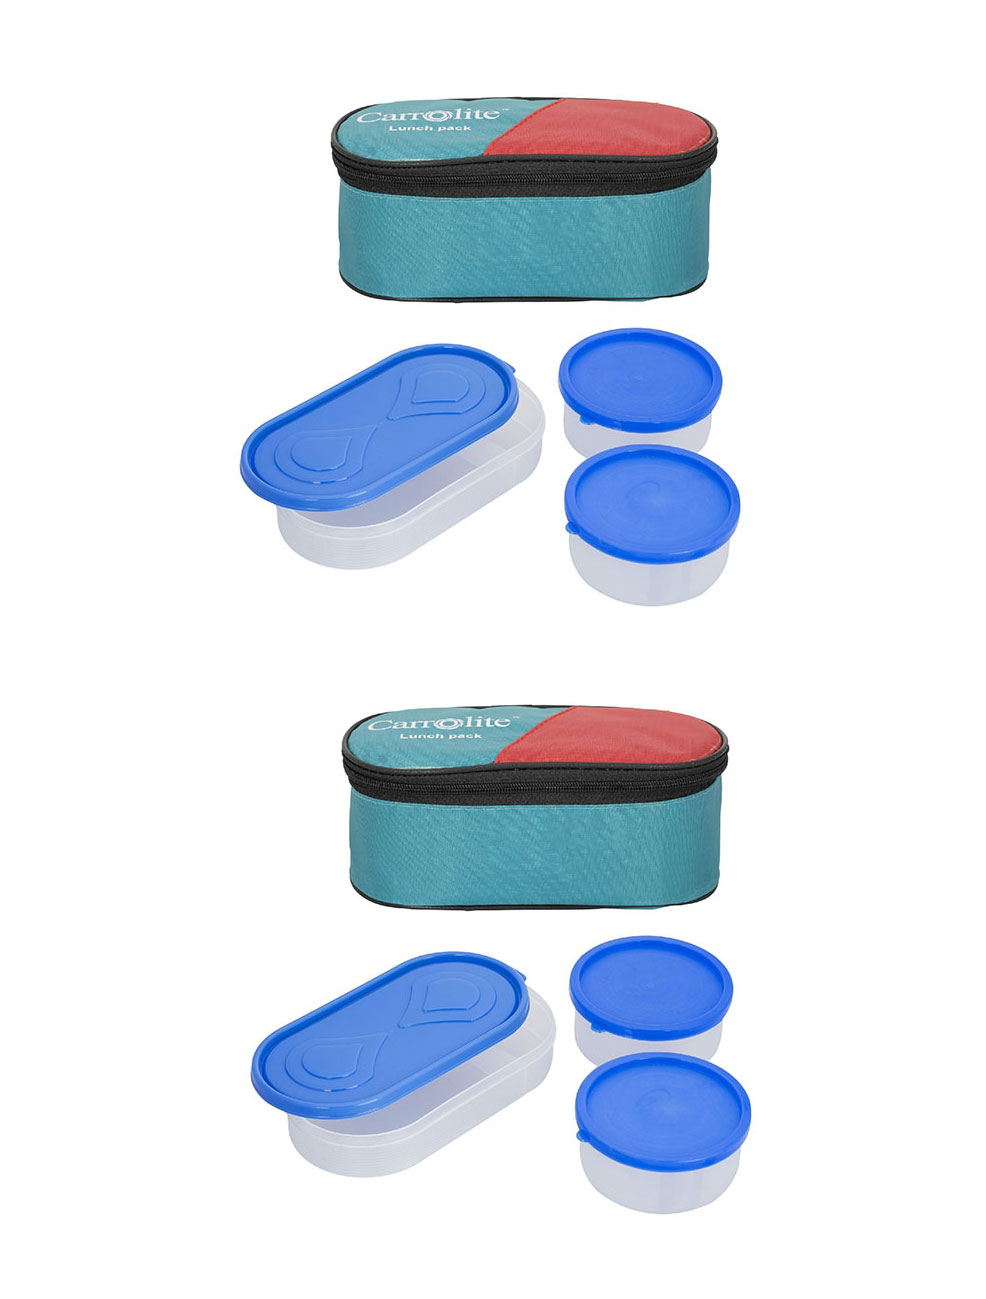 Set Of 2 Green 3 in 1 Lunchbox 2 Plastic Container 1 Plastic Chapati tray